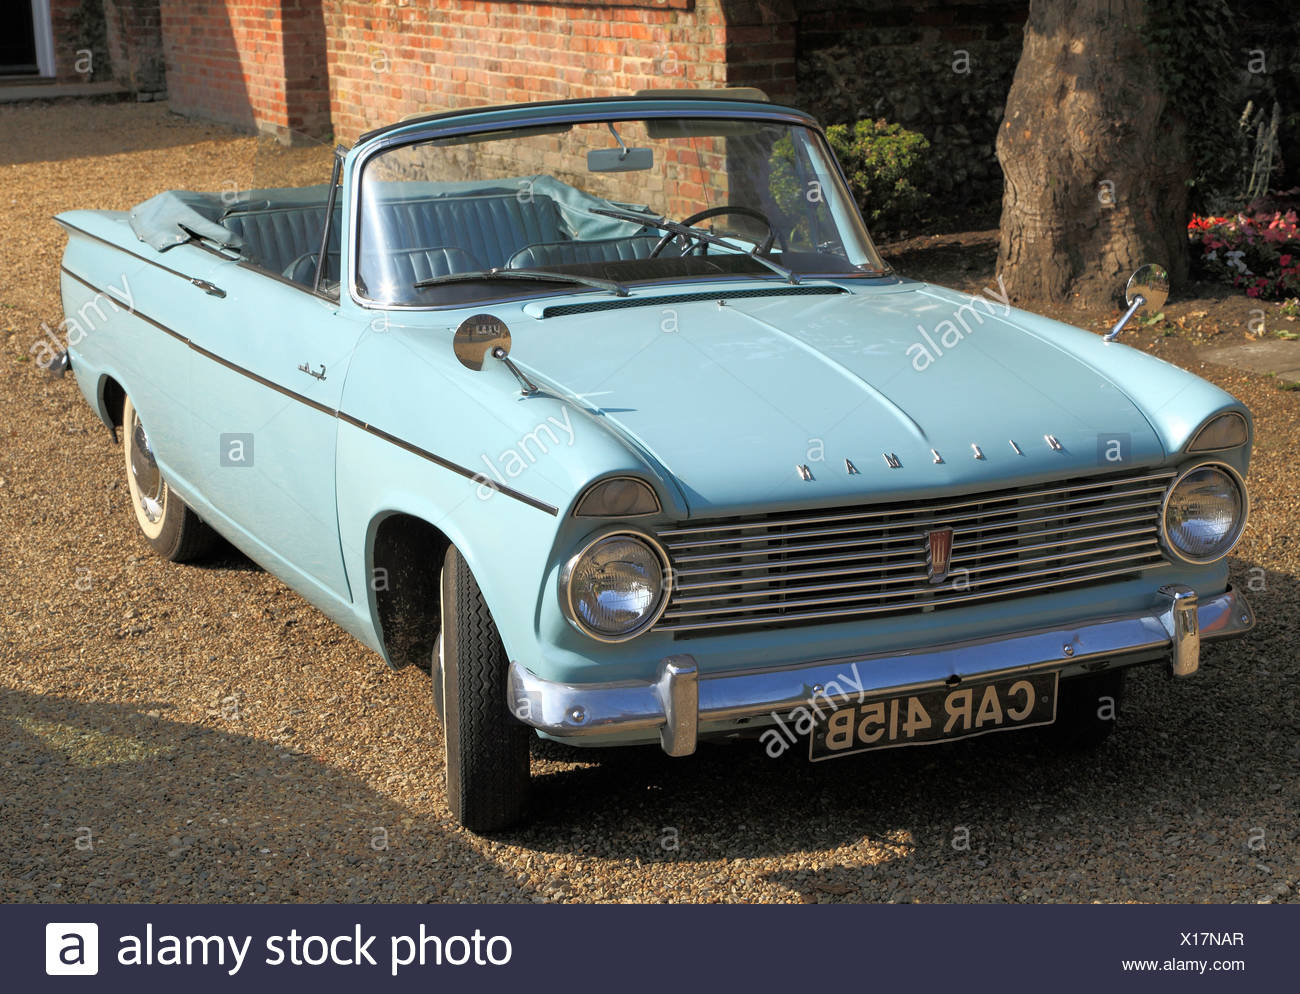 Hillman Super Minx, 1960s vintage motor car, British classic cars vehicles Hillmans, convertible convertibles, England UK - Stock Image